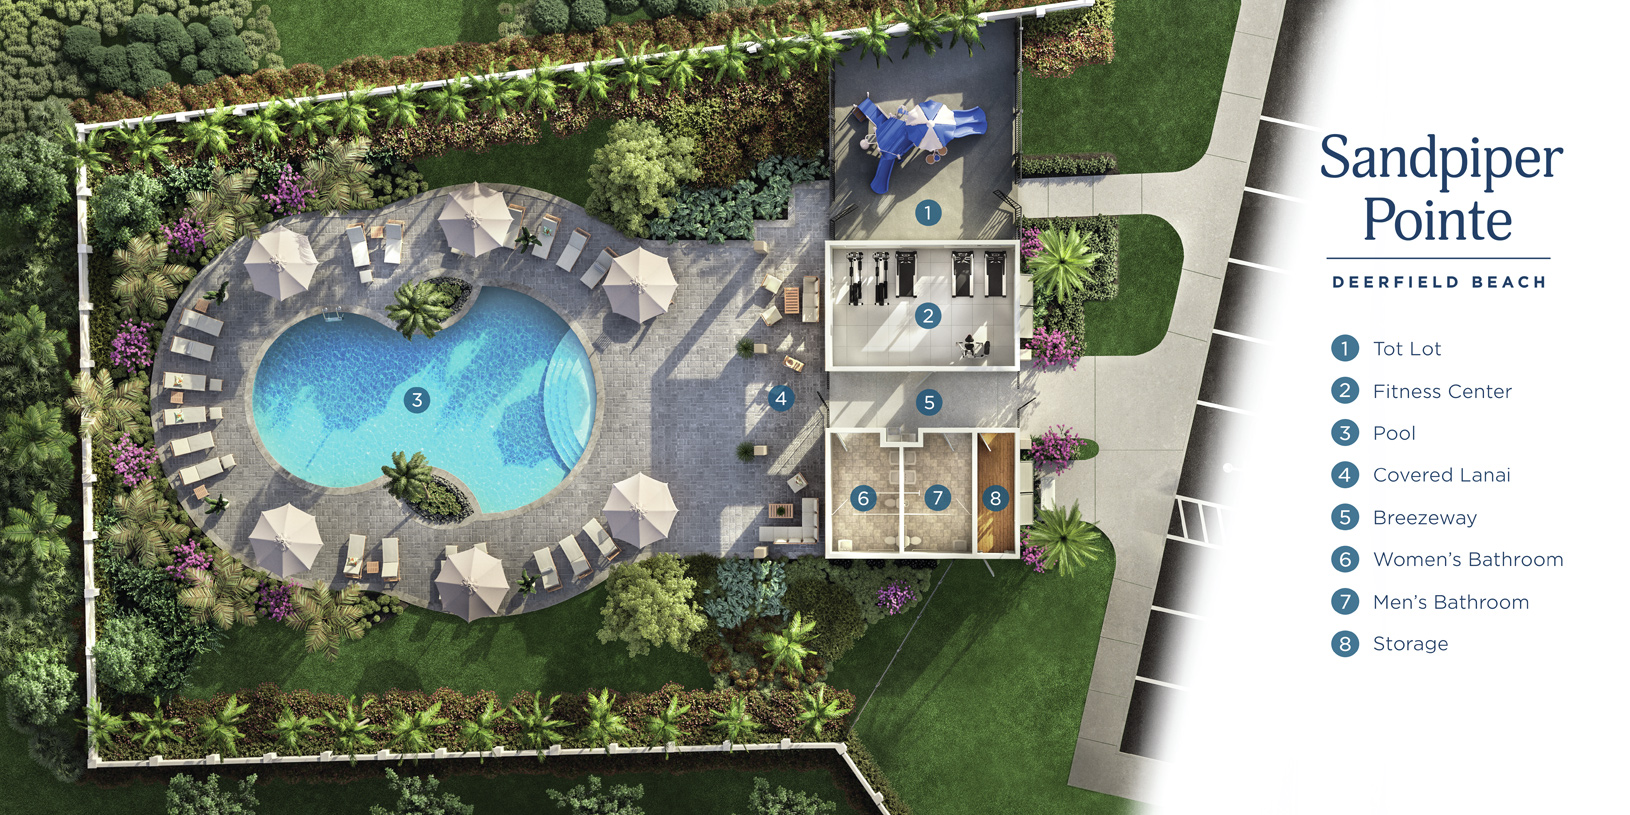 Community amenities include swimming pool, fitness center, and playground